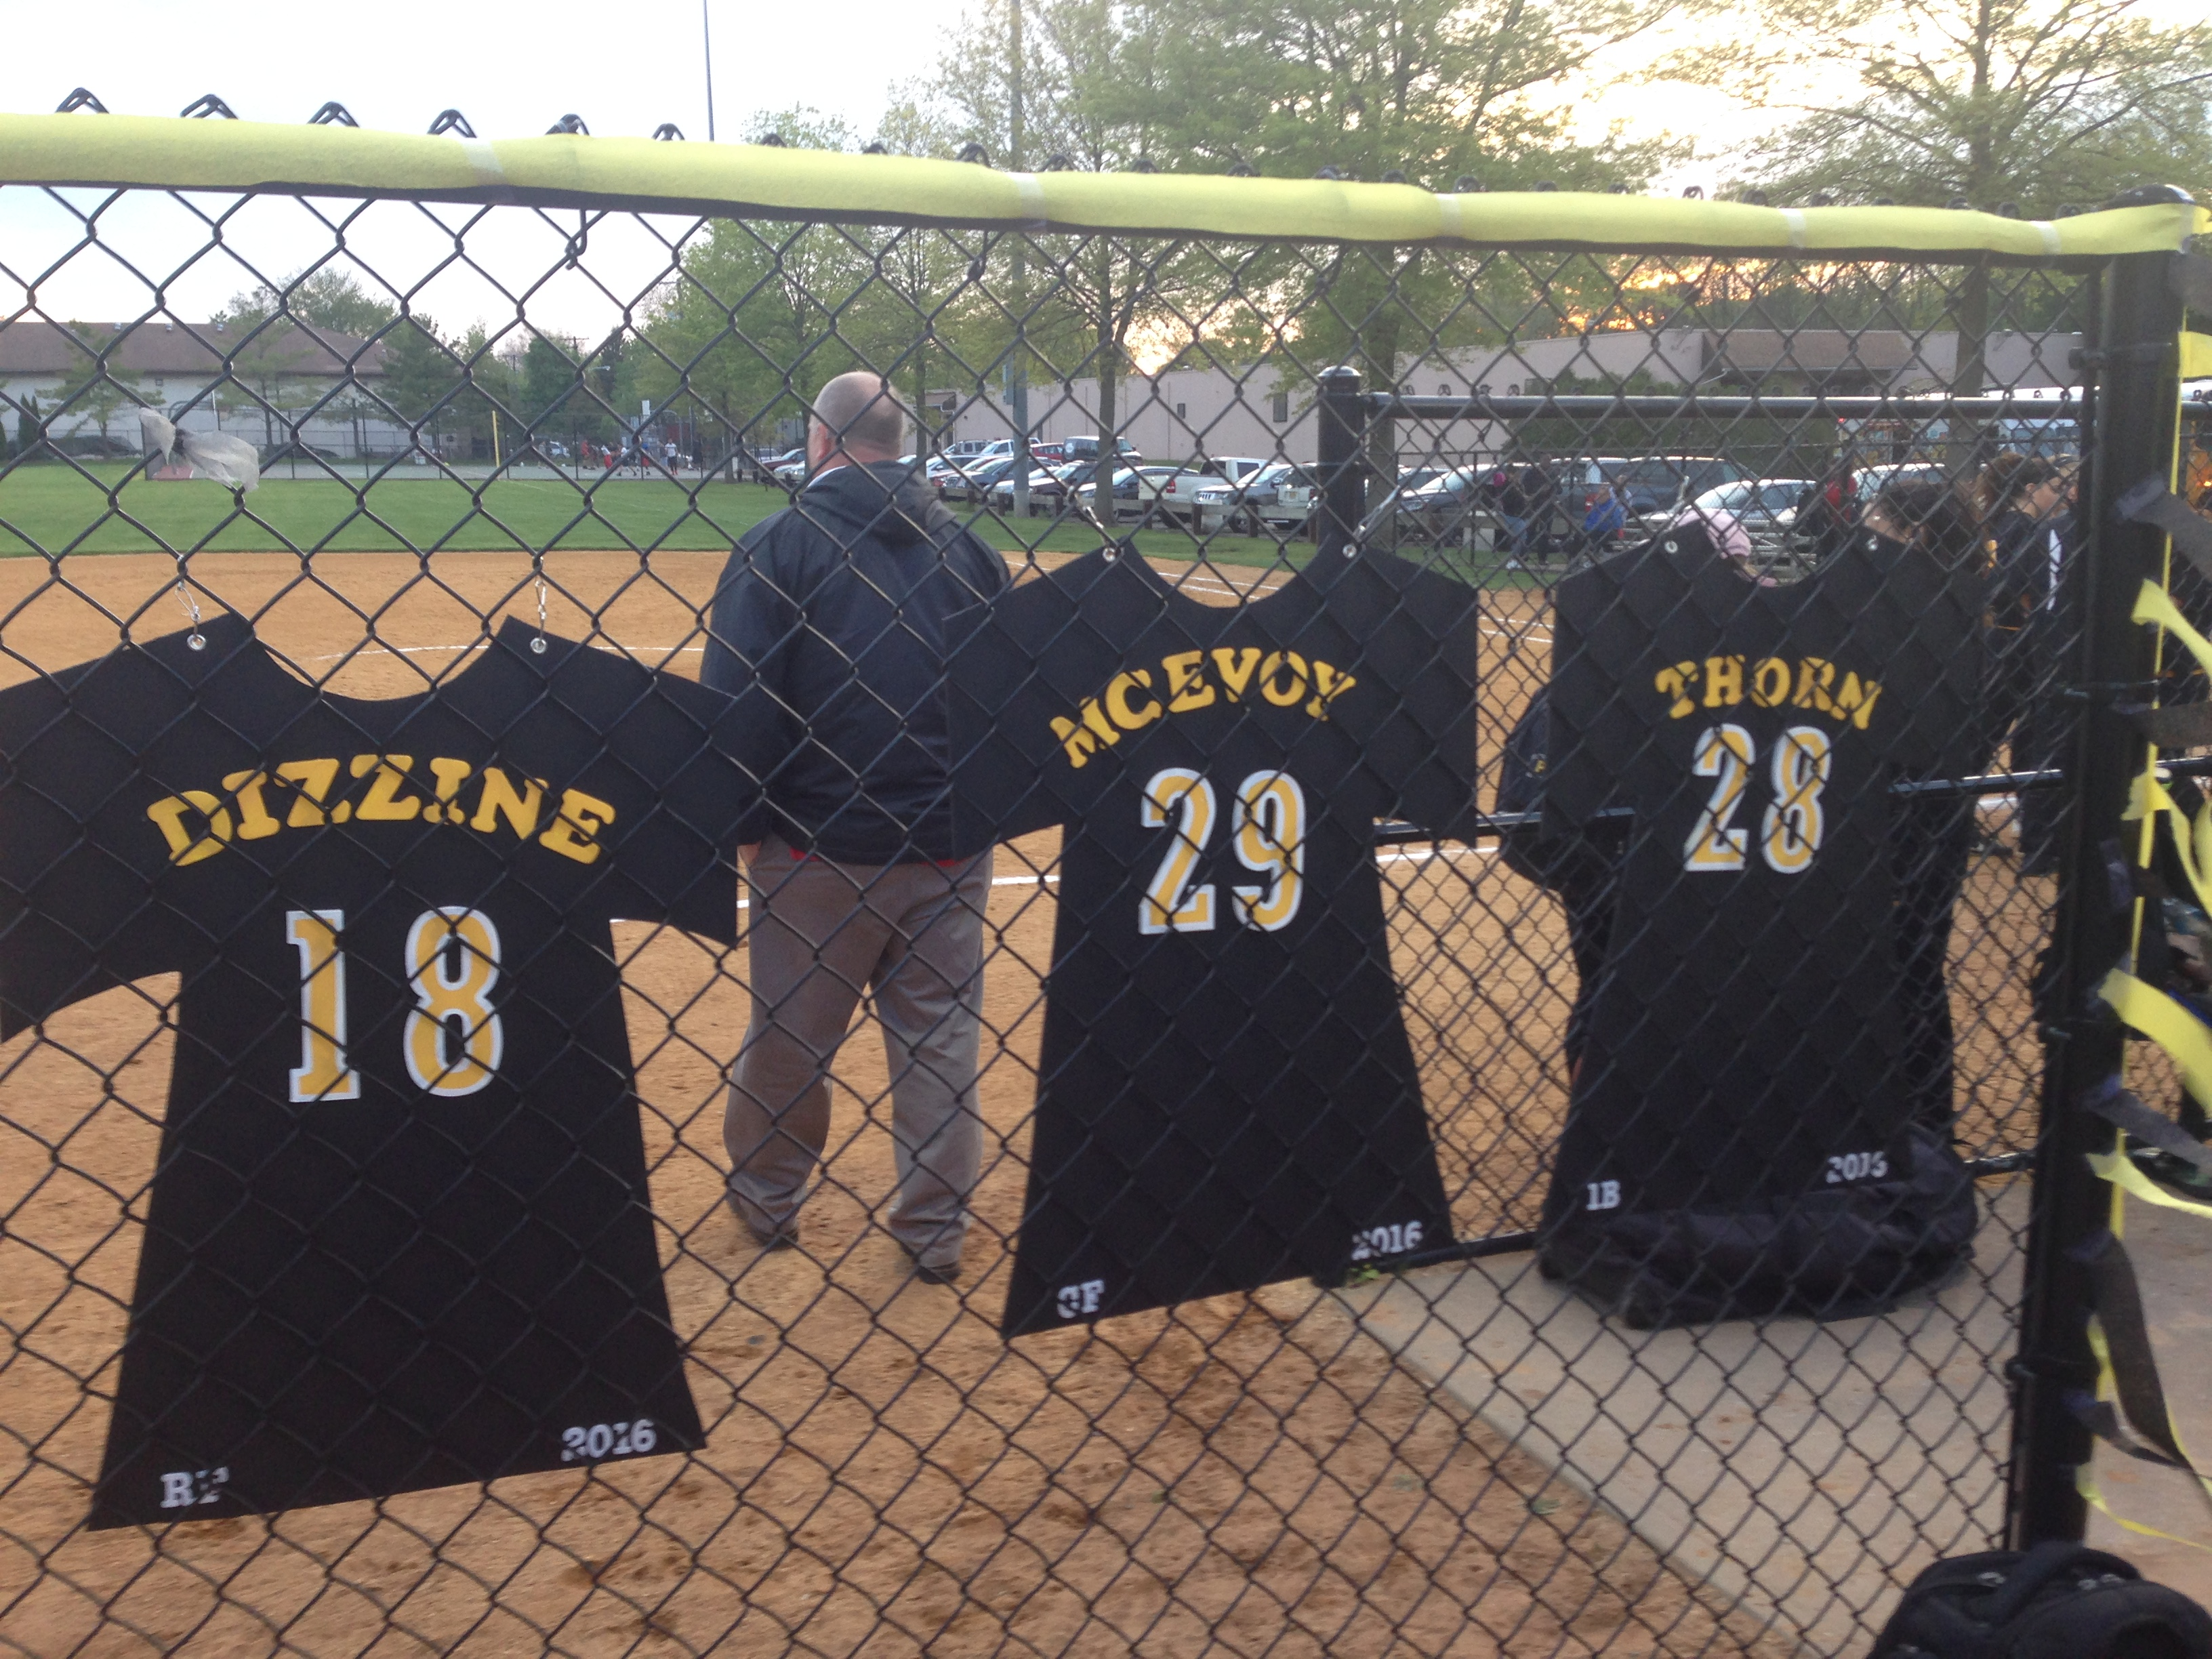 c7a1b58cca5cf79a0013_Softball_Senior_Night_vs_Elizabeth_5-9-16_012.JPG